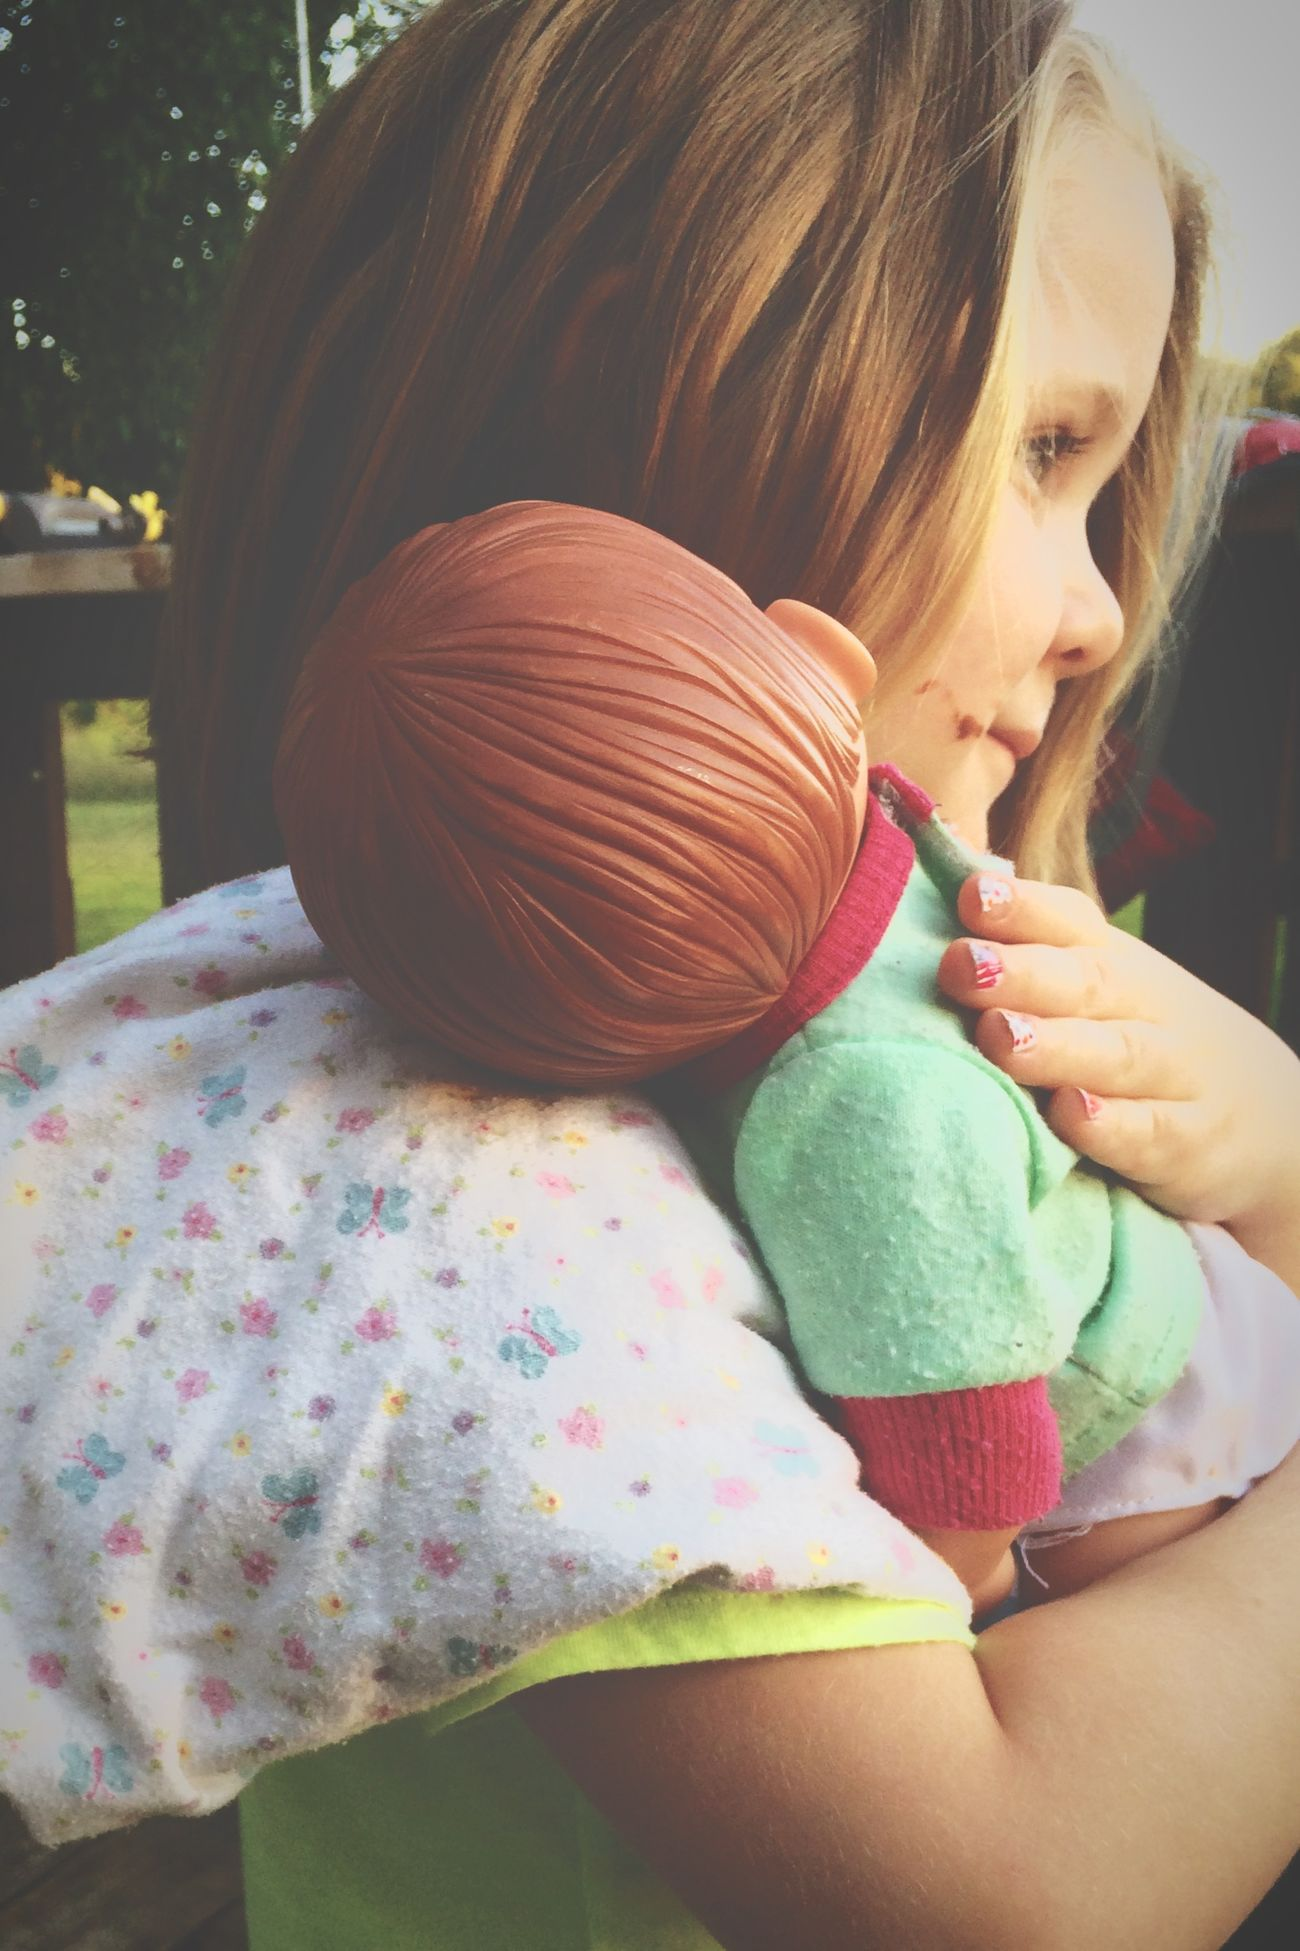 Fouryearsold playing Dolls Littlemommy PreciousMoments United States